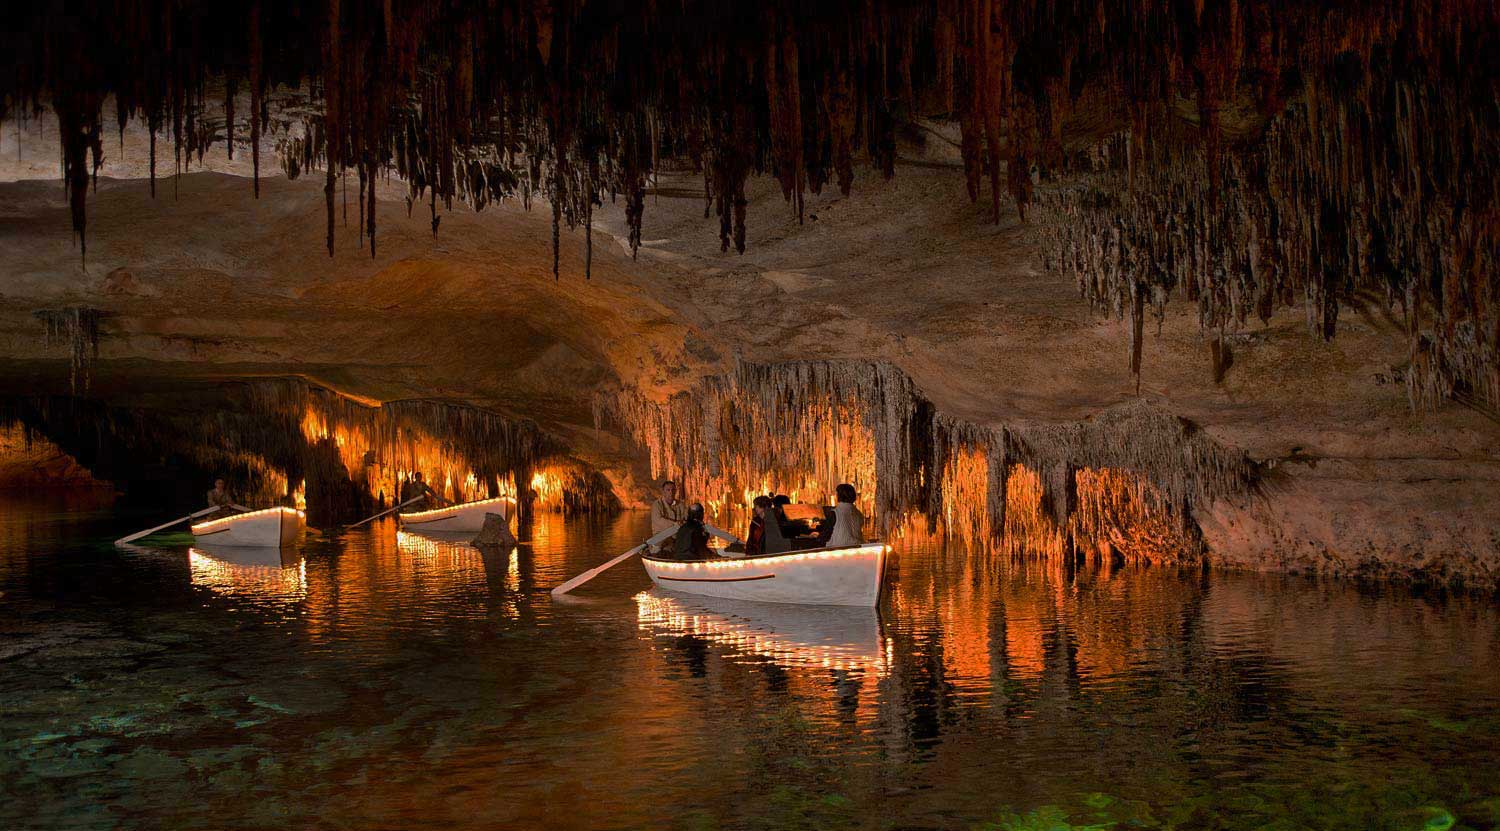 Floating boats in the magnificent Caves of Drach - Majorca